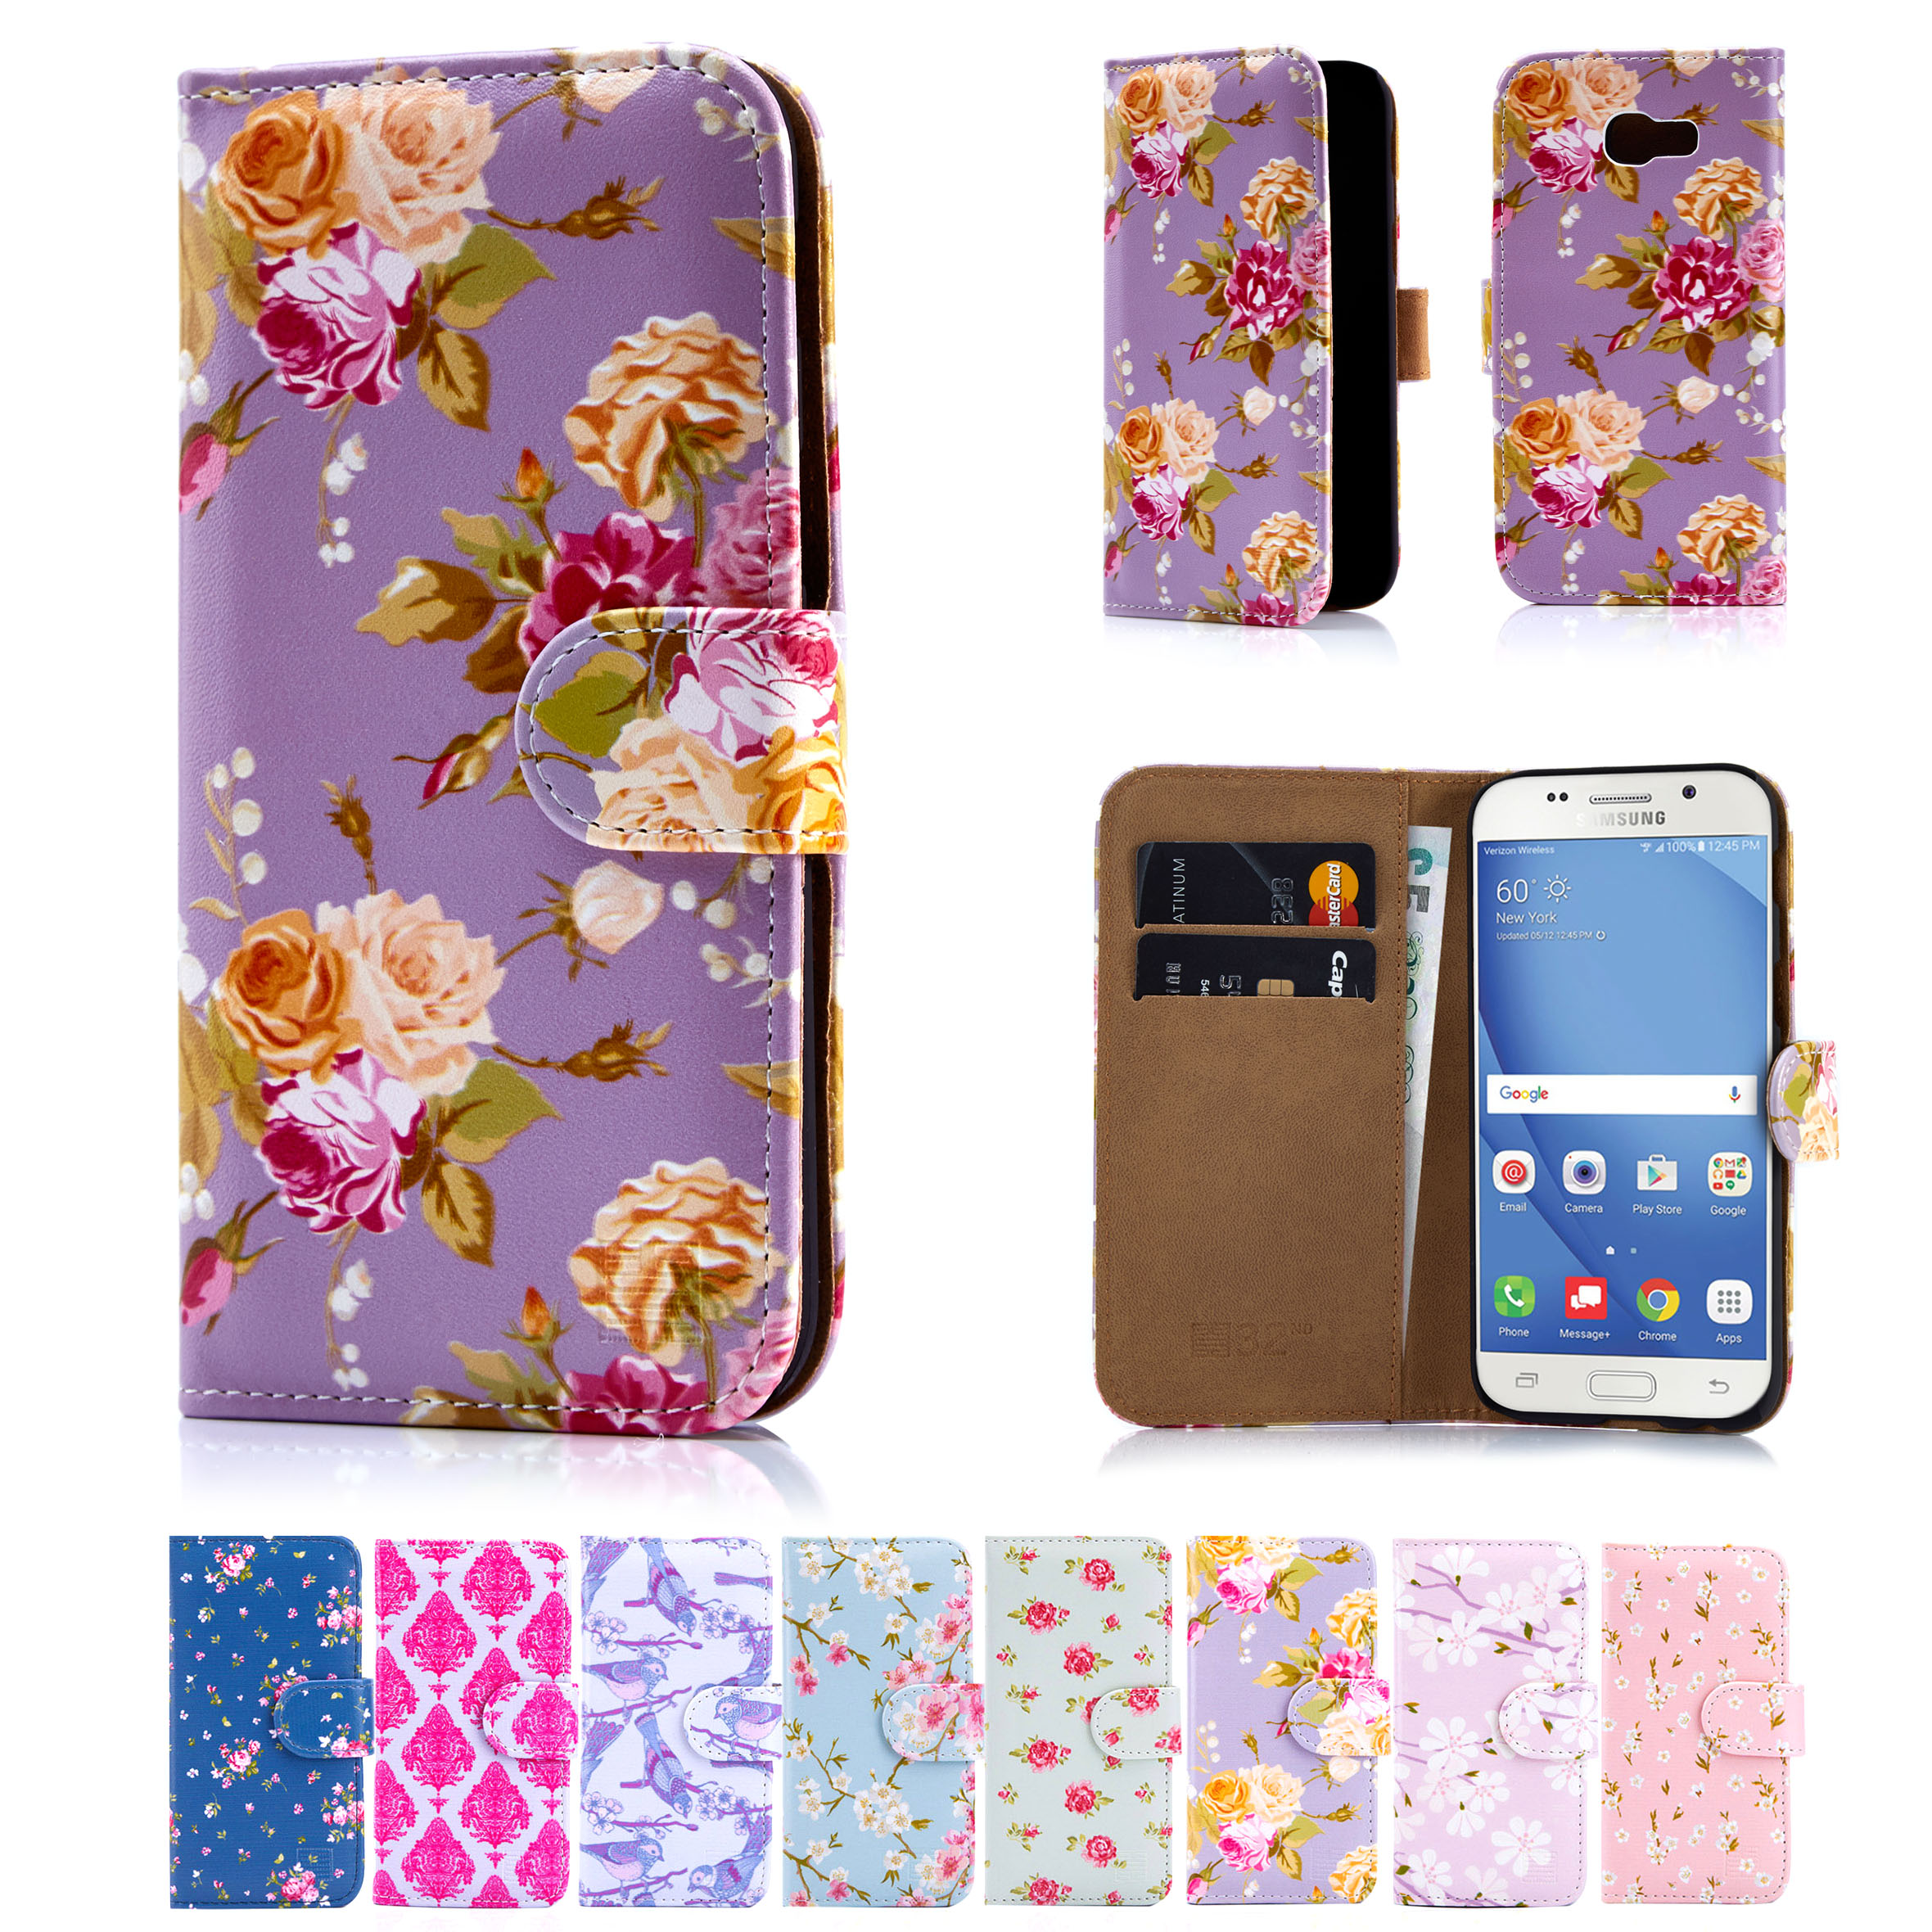 ... Book PU Leather Wallet Case Cover for Samsung Galaxy Phones : eBay